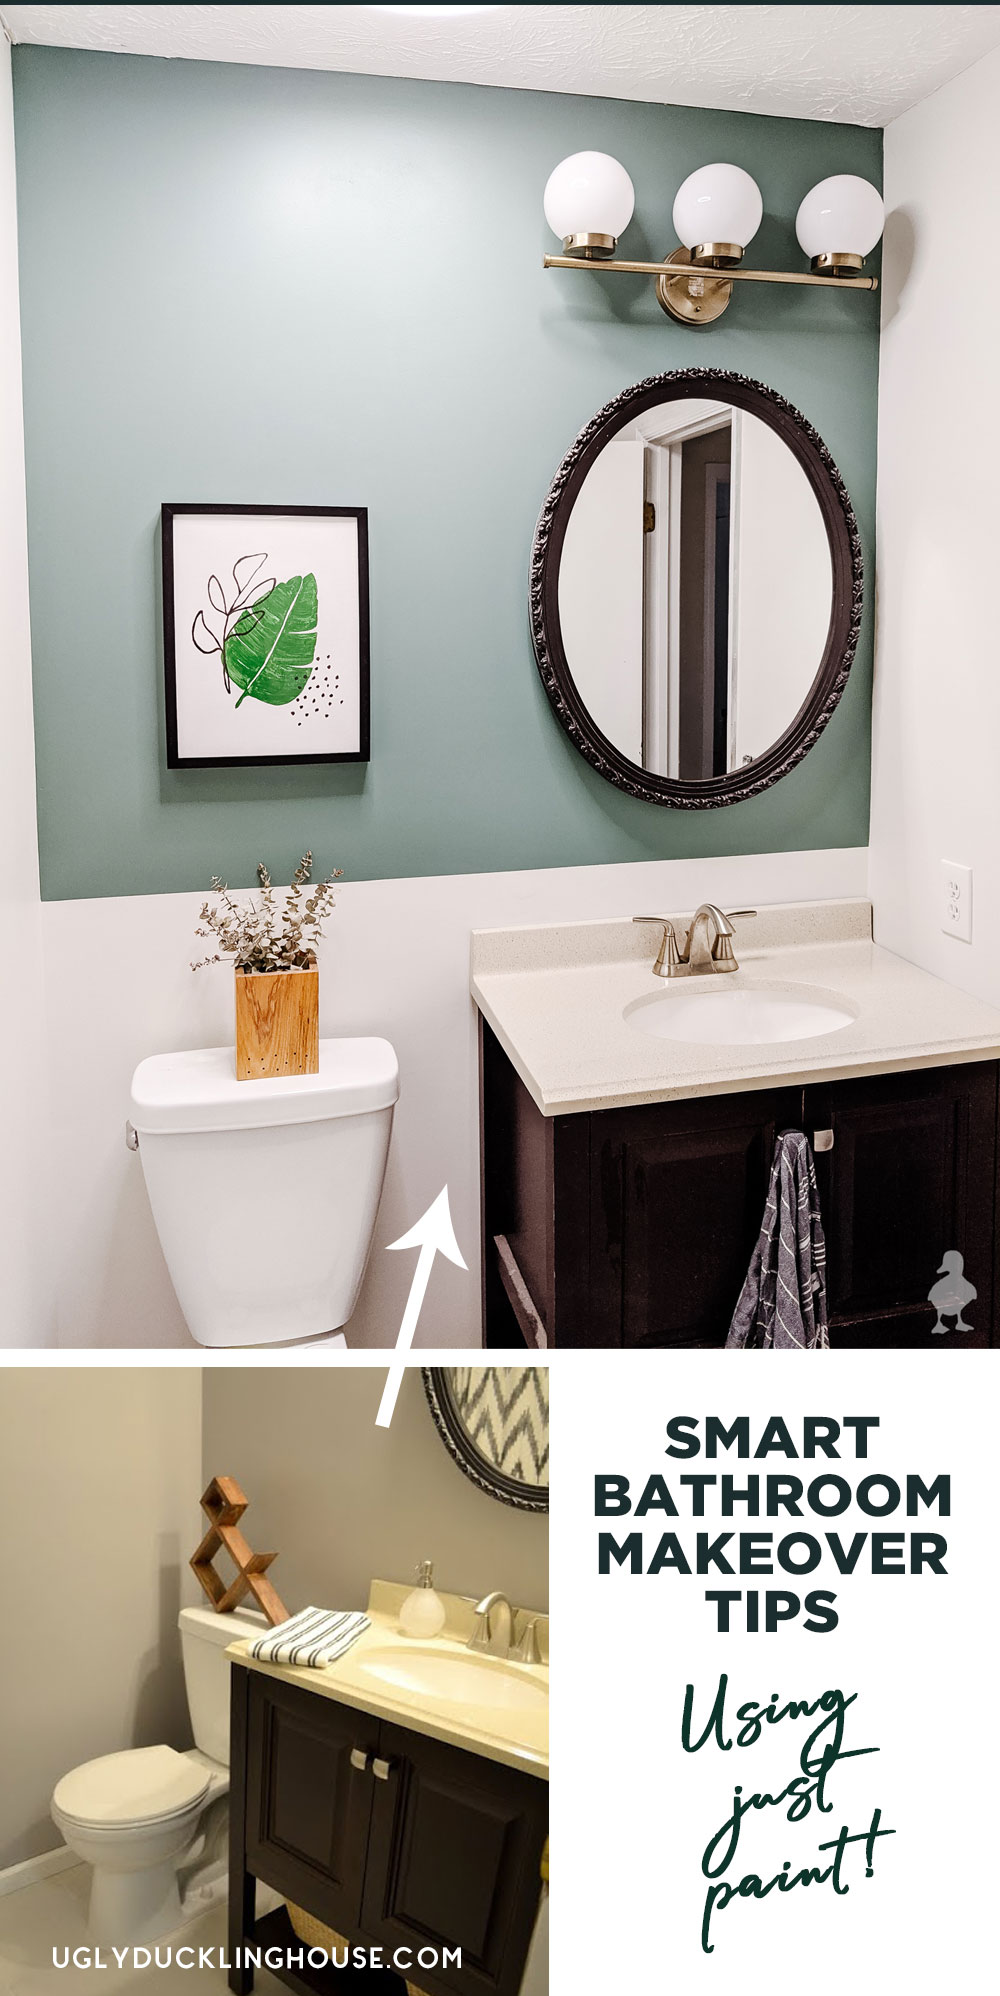 tips for paint in a small bathroom